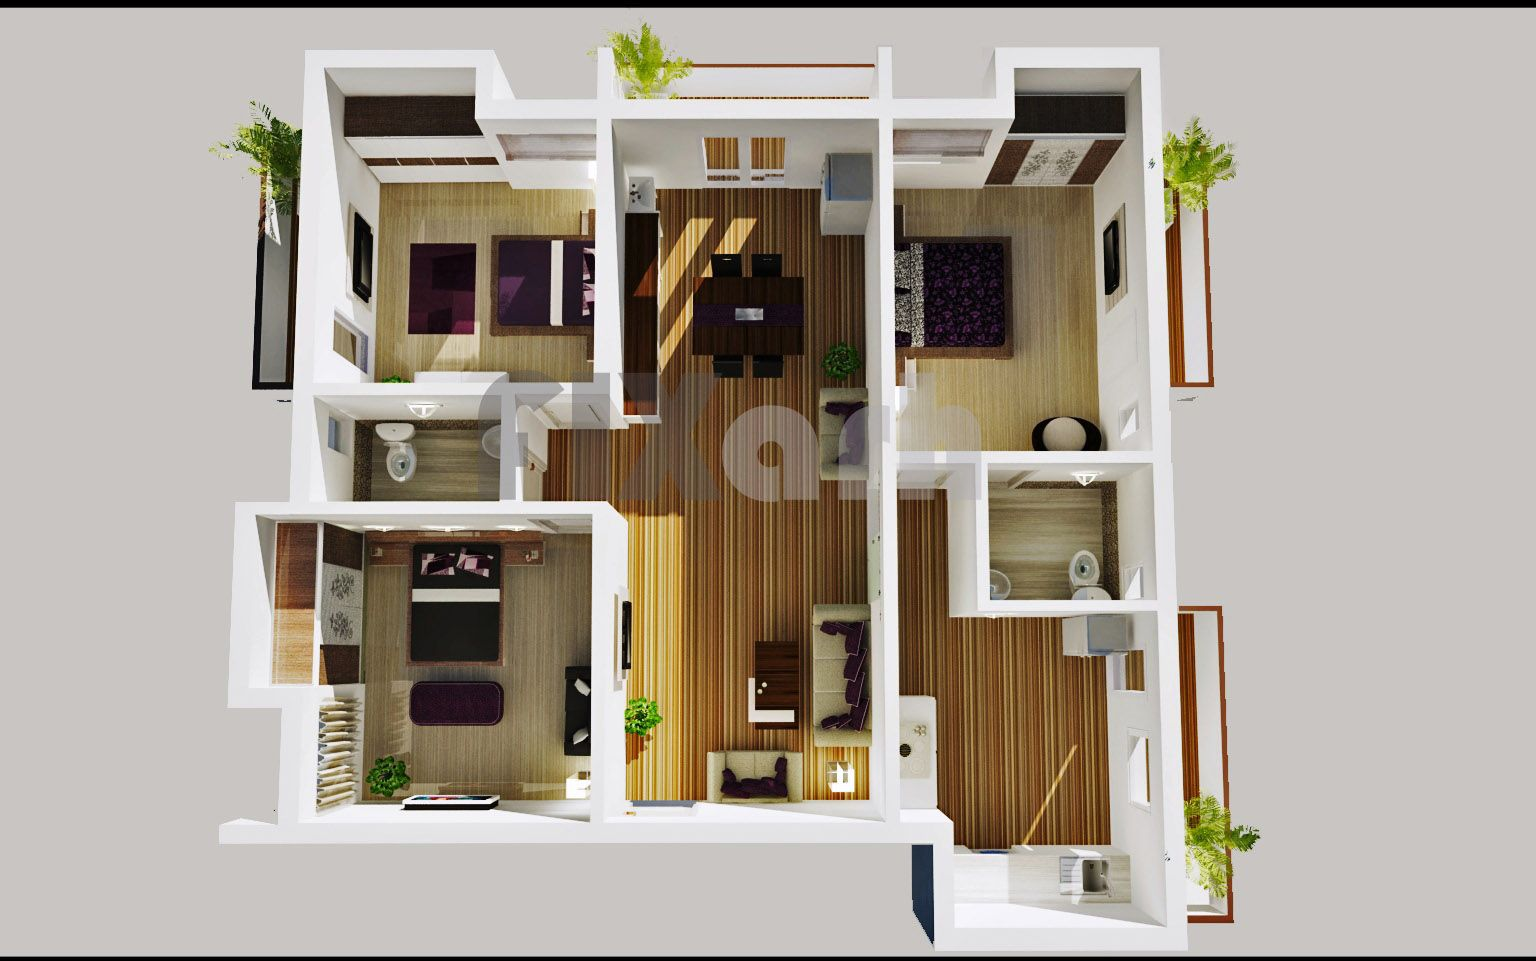 2 Story 2 Bedroom Apartment Plans Of Modern Home Plan Large Terrace Single Story Google